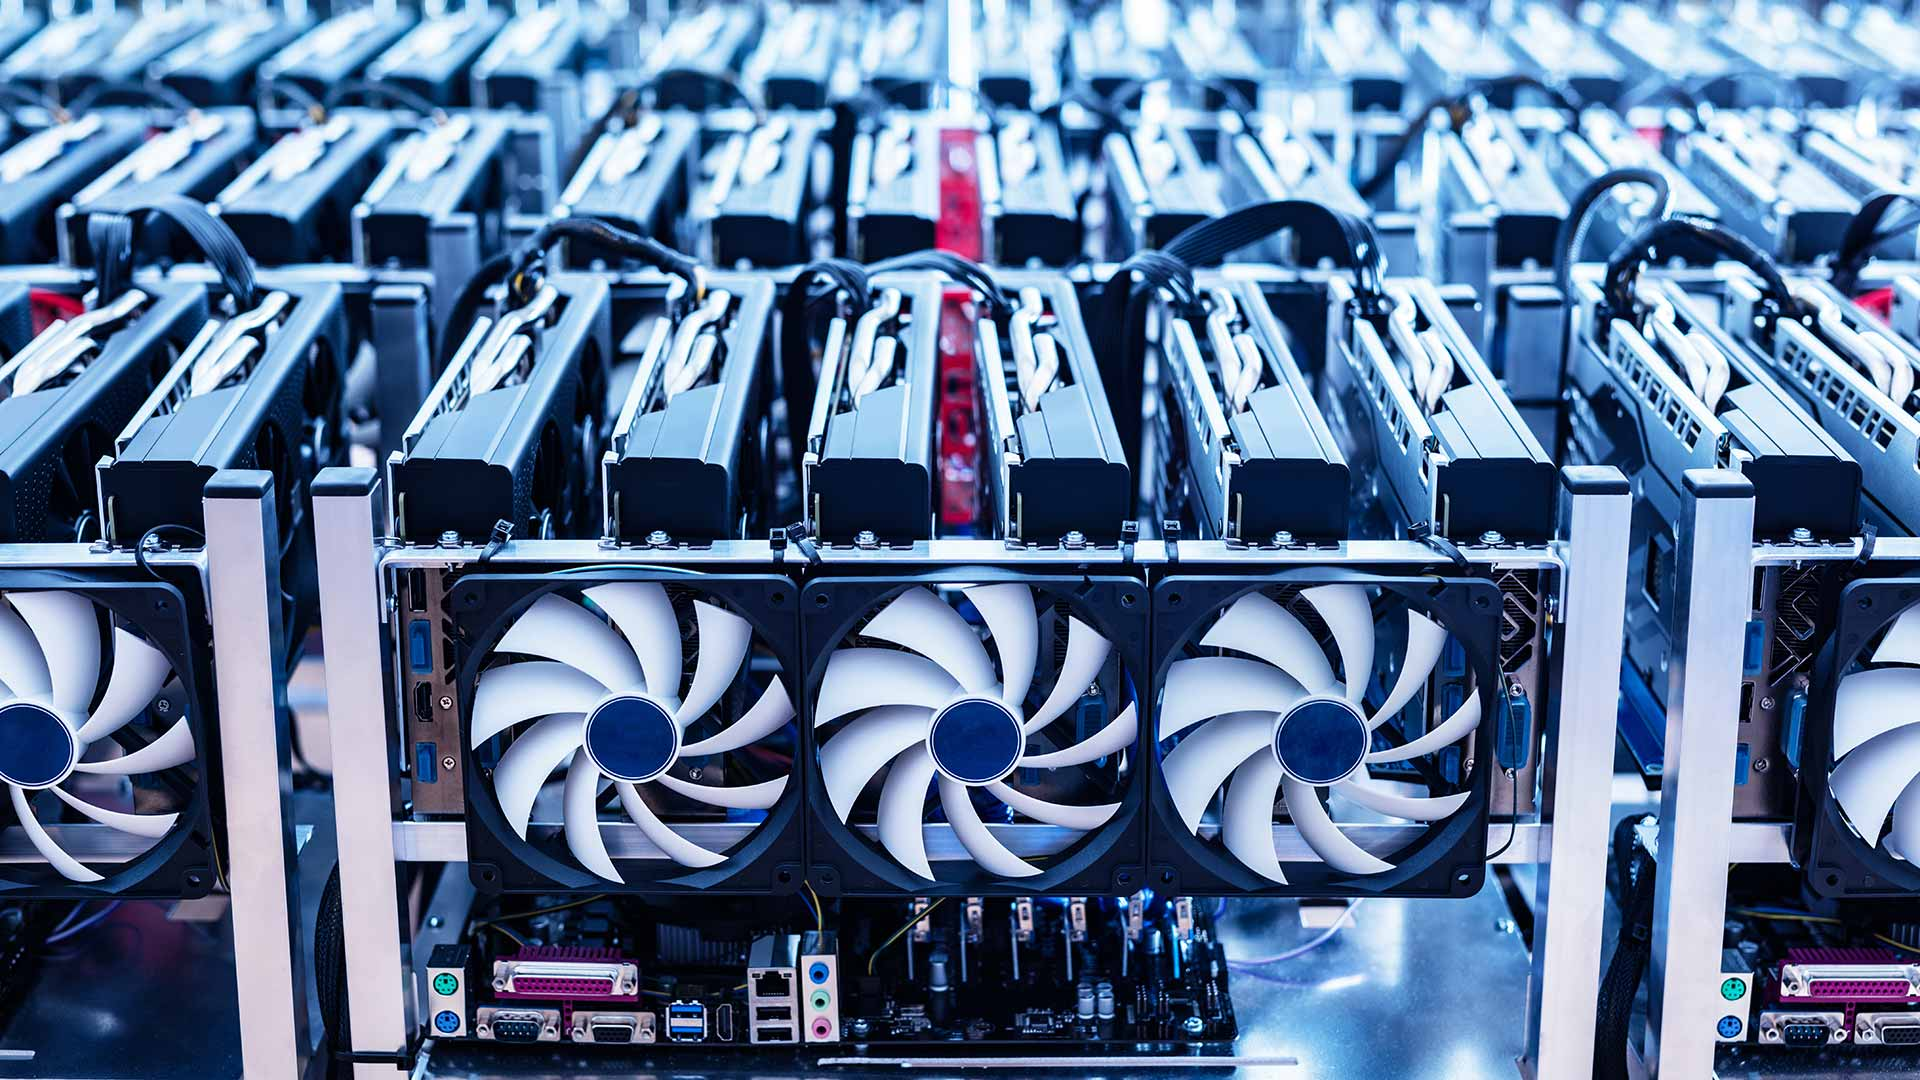 A Bitcoin mining farm, one cited reason for the current shortages. Image: